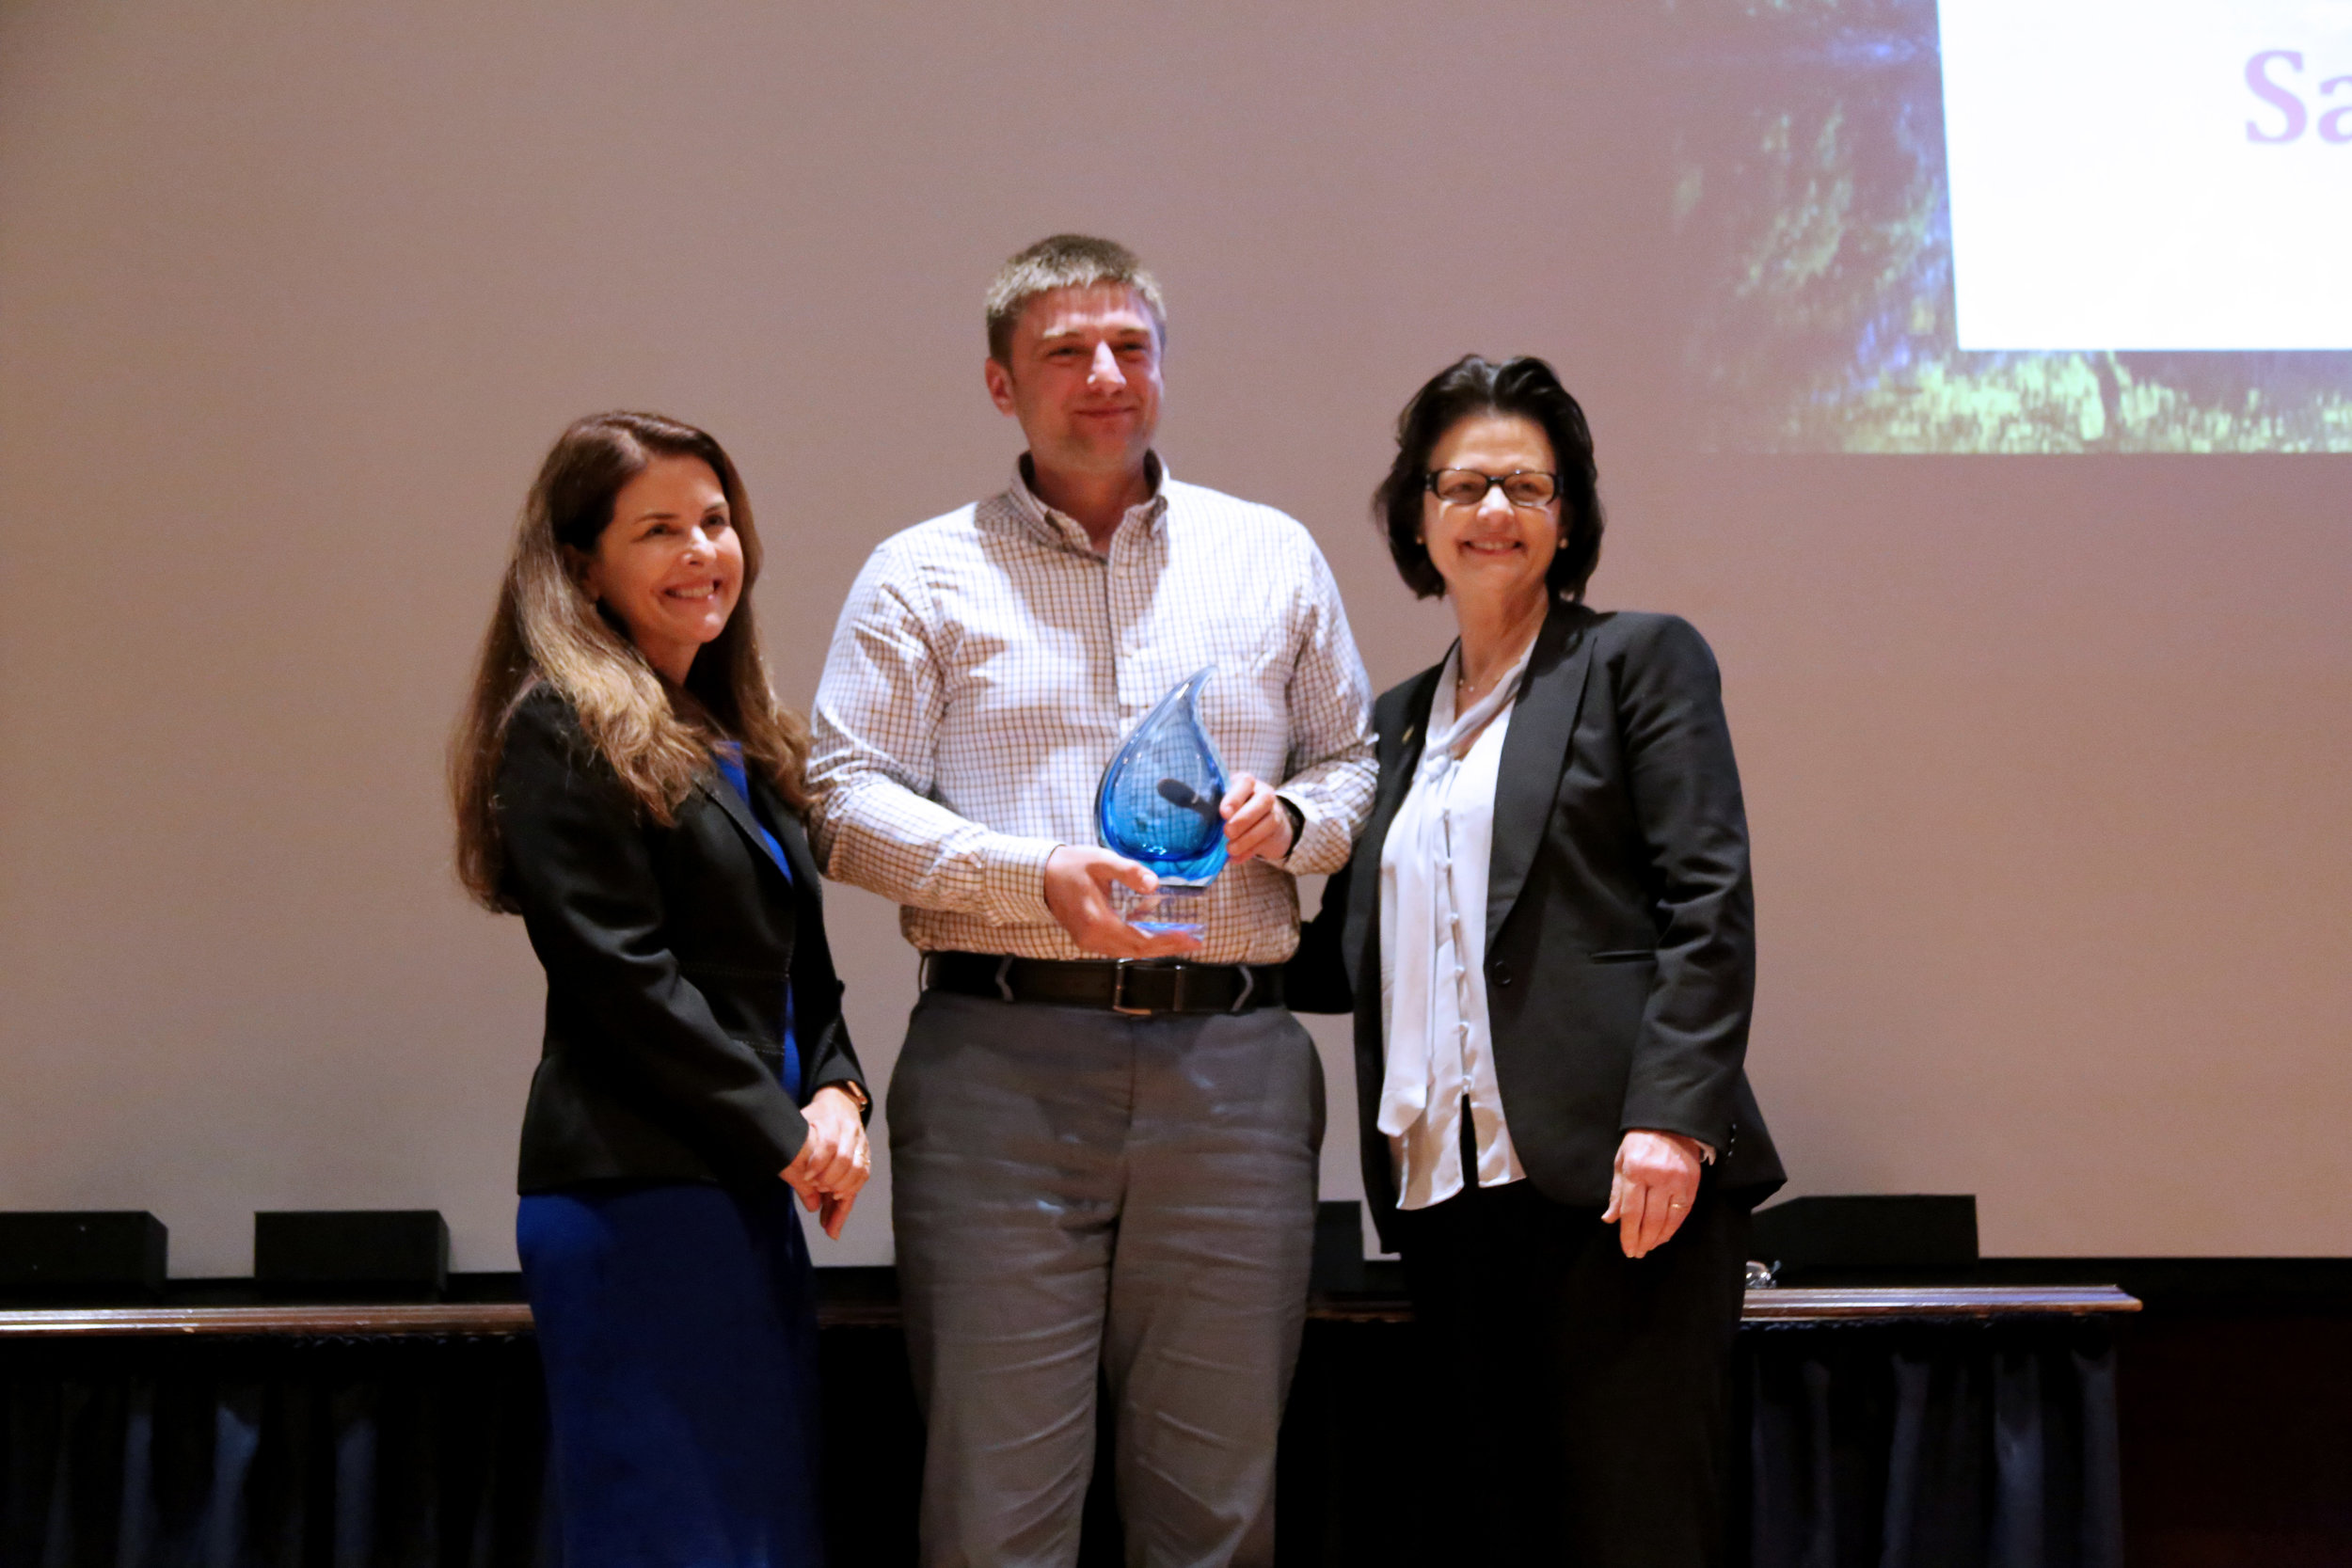 Dr. Bogdan Jackson-Duda with Samuel Jackson, Inc. accepts the Blue Legacy in Manufacturing Award from Water Conservation Advisory Council Chair Karen Guz (L) and Texas Water Development Board Member Kathleen Jackson (R). (Photo courtesy TWDB)